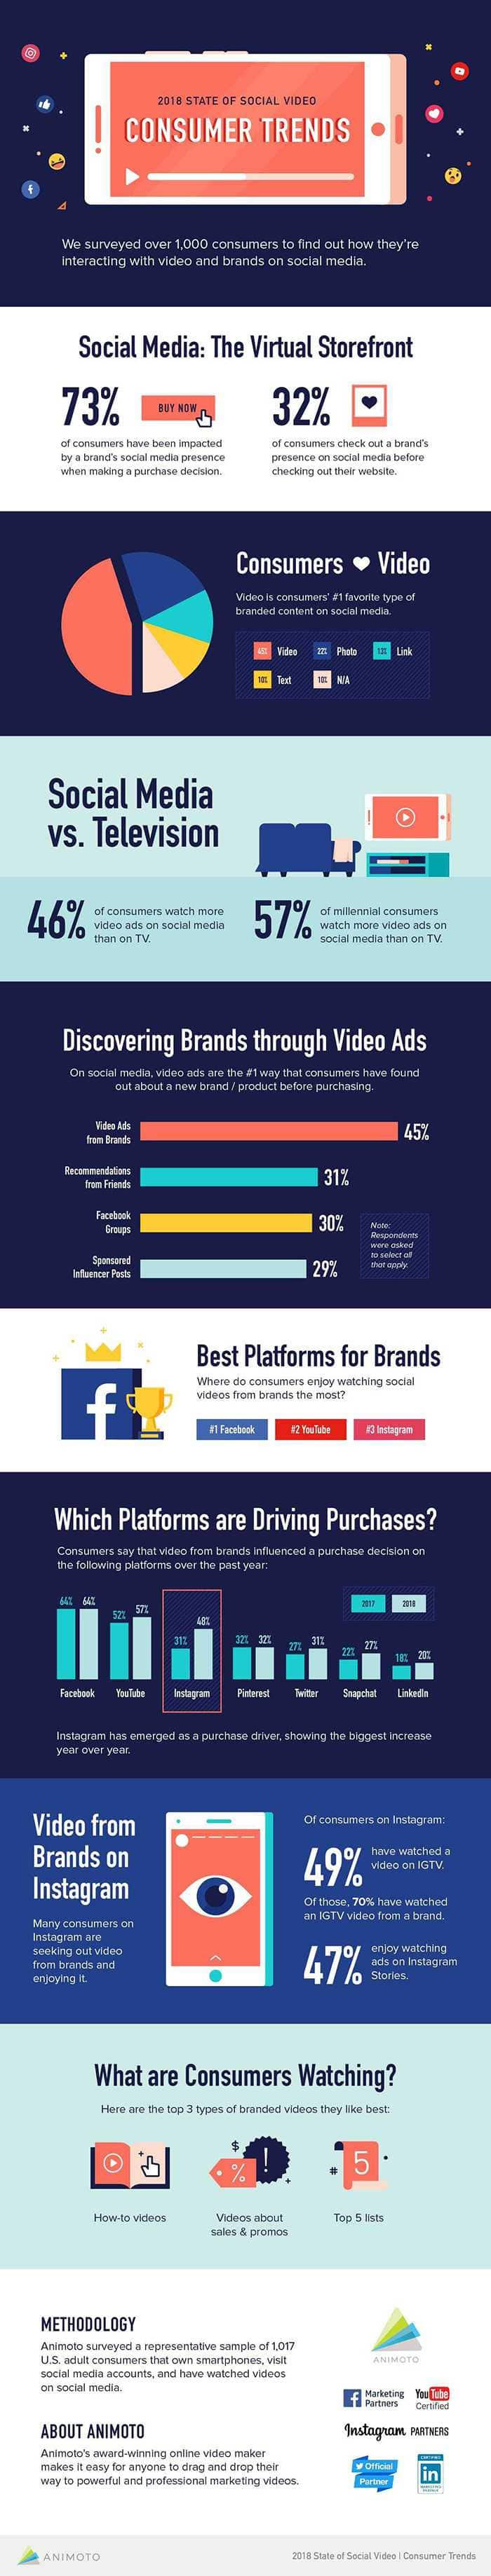 Infographic about Consumer Trends - State of Social Video - How Customers Engage with Social Media Video: 8 Things You Need to Know